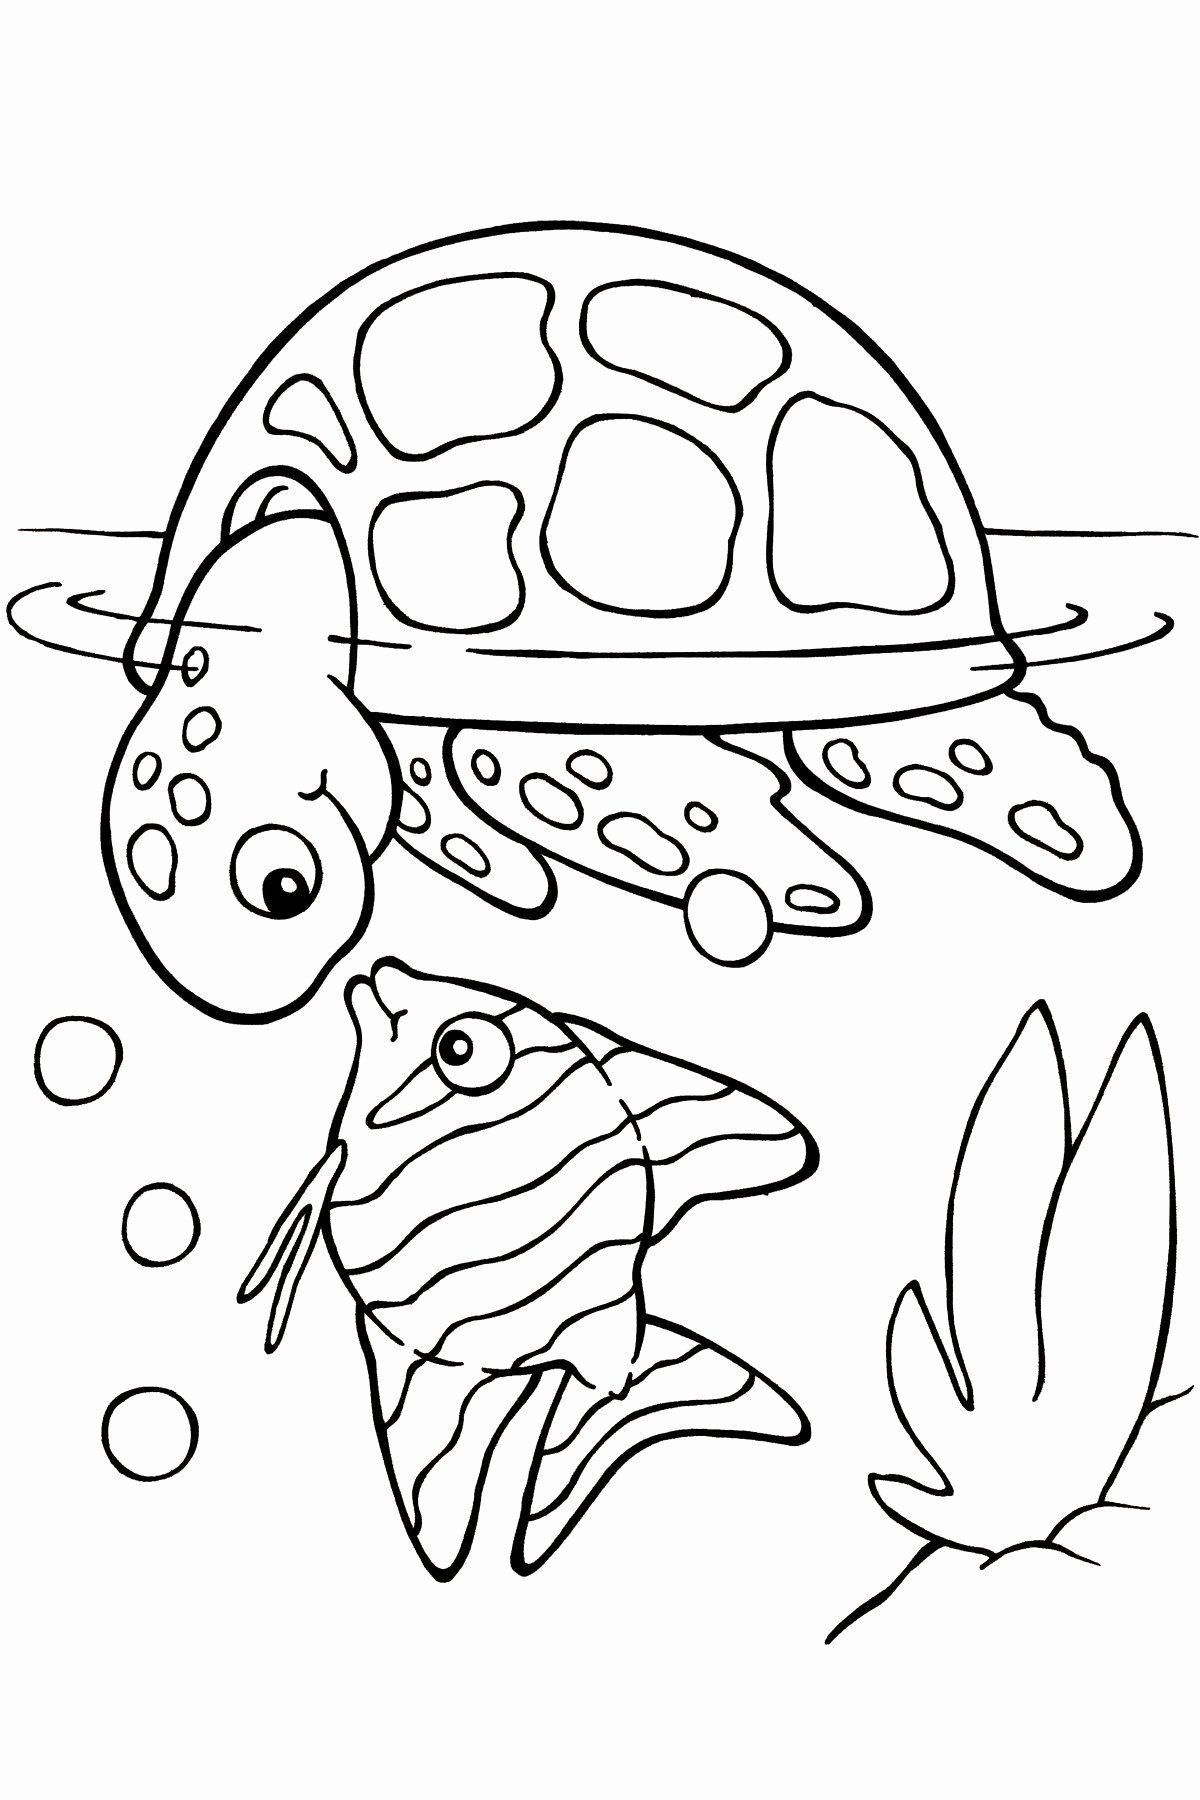 Farm Animal Coloring Sheets Inspirational Lets Coloring Kidsing Pages Sea Animals Animal Book Fr In 2020 Turtle Coloring Pages Animal Coloring Pages Fish Coloring Page